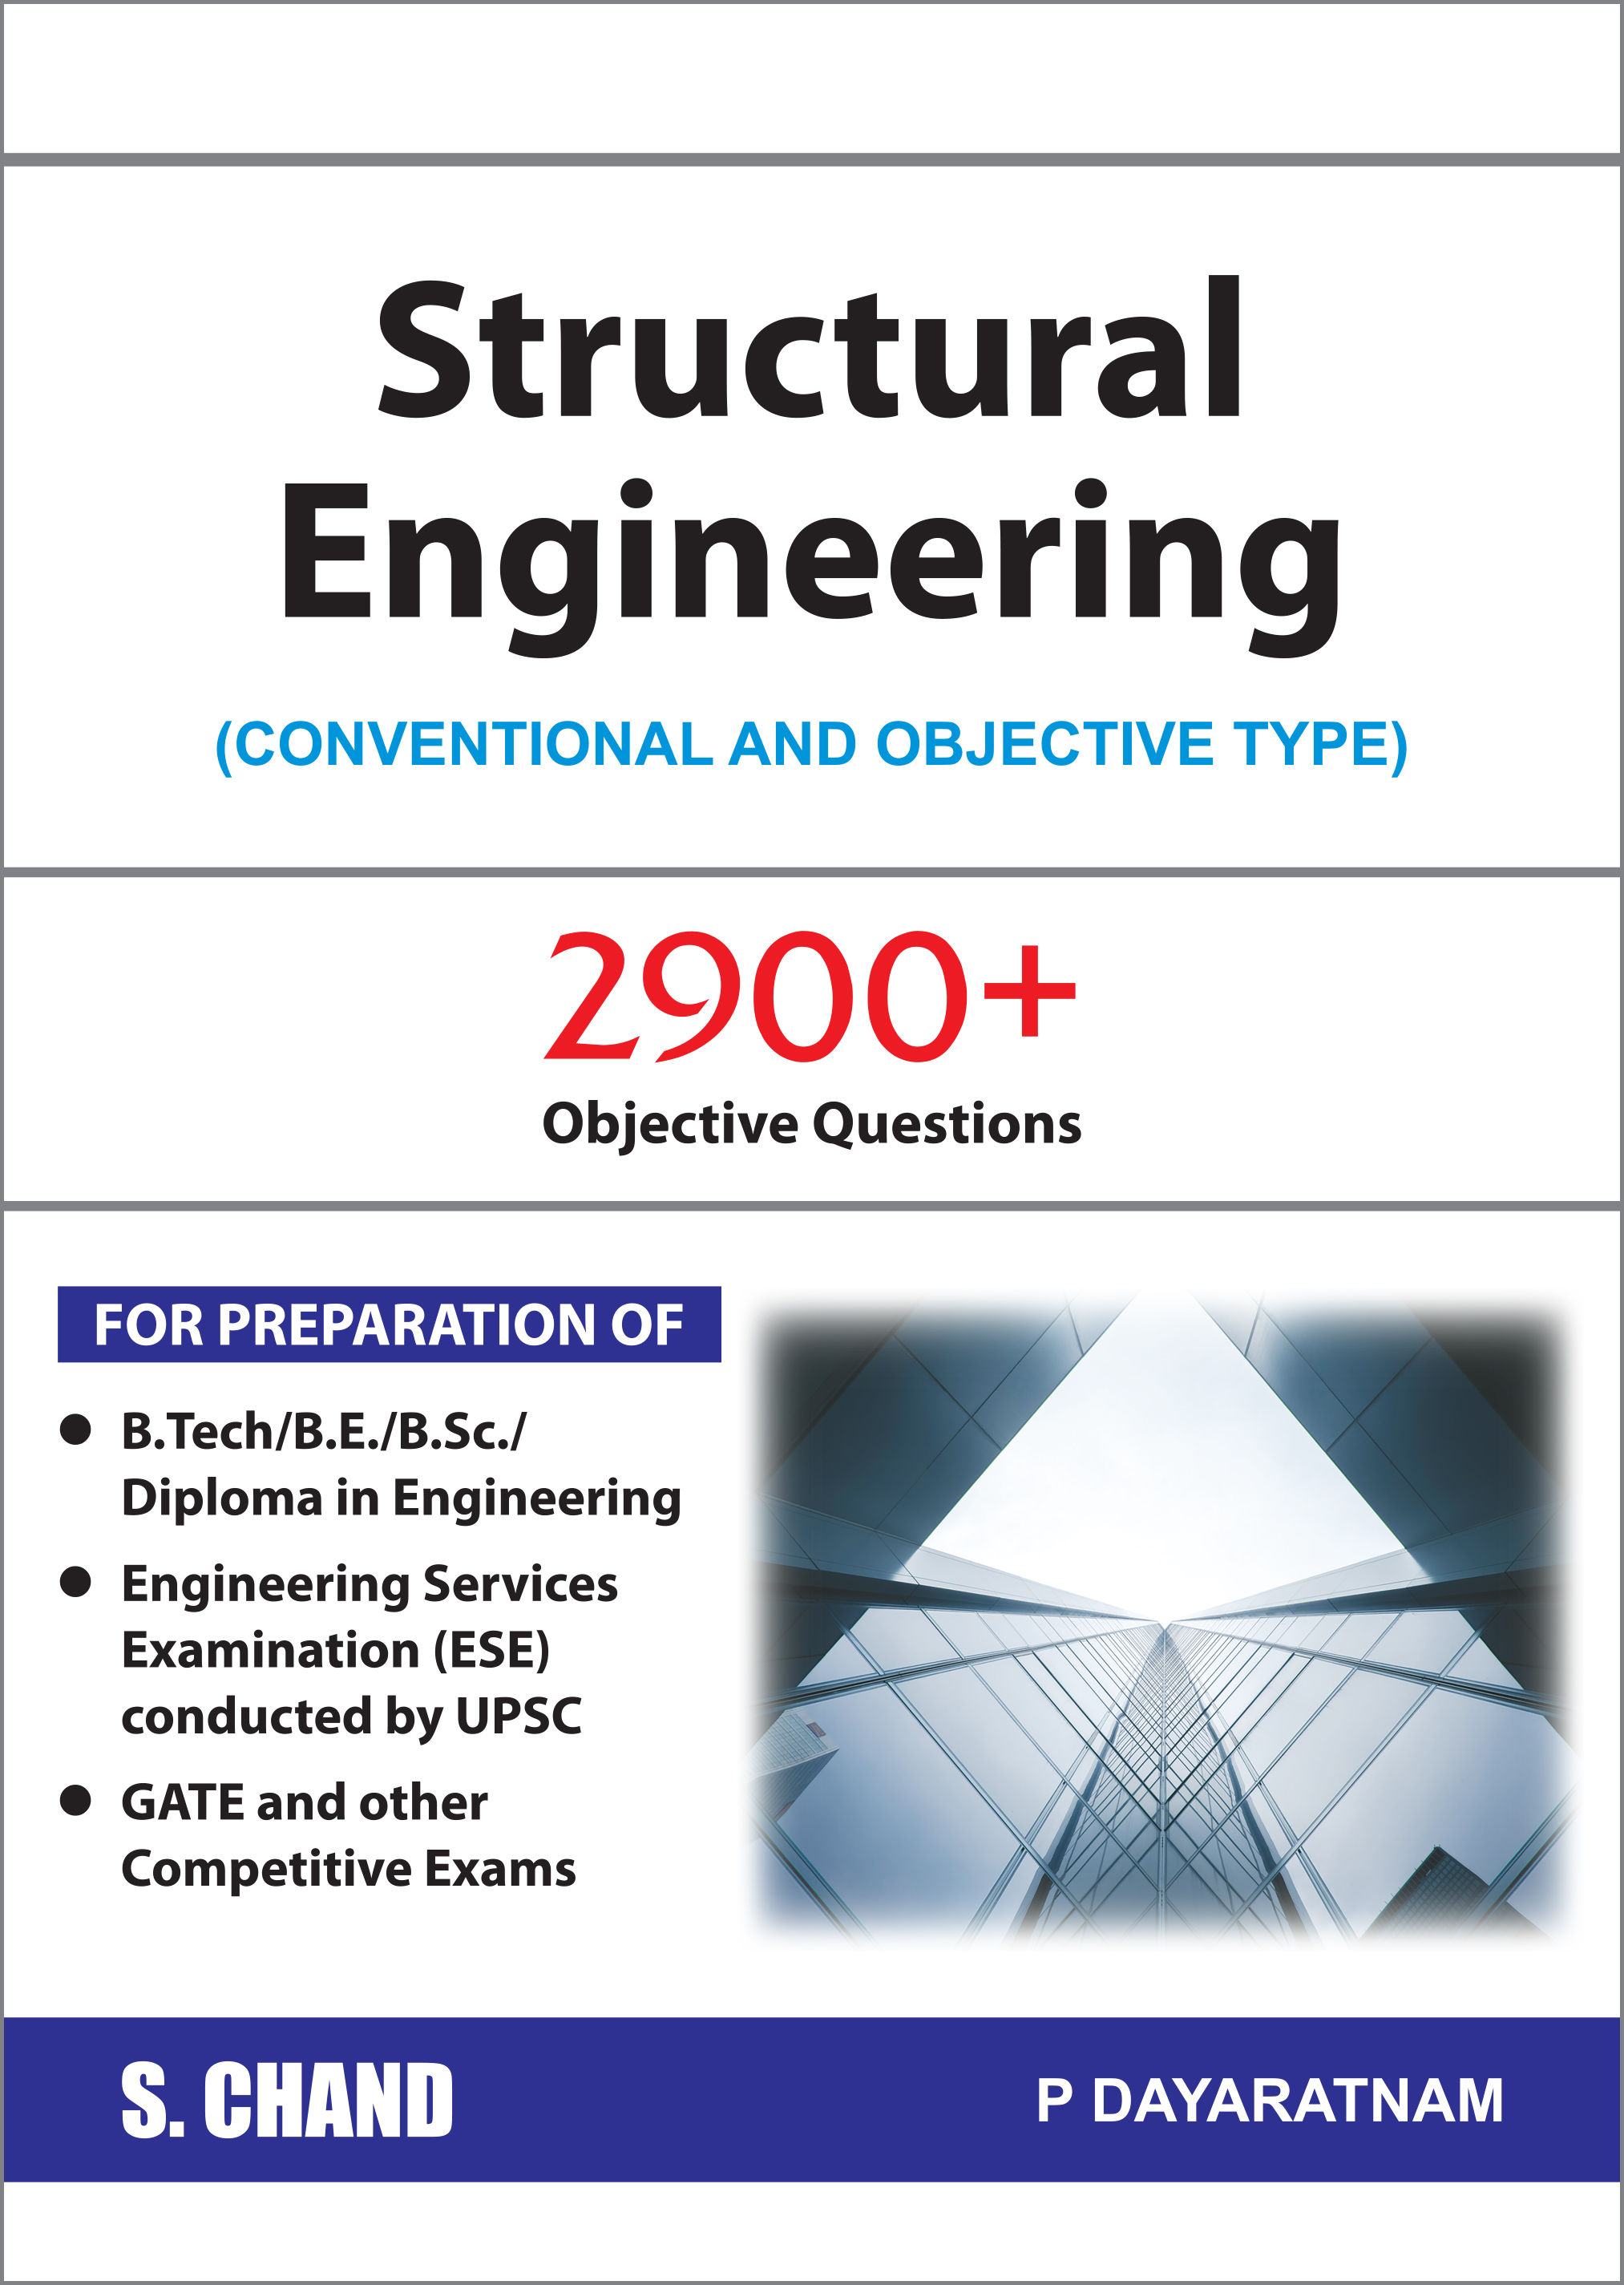 Structural Engineering (Conventional and Objective Type)